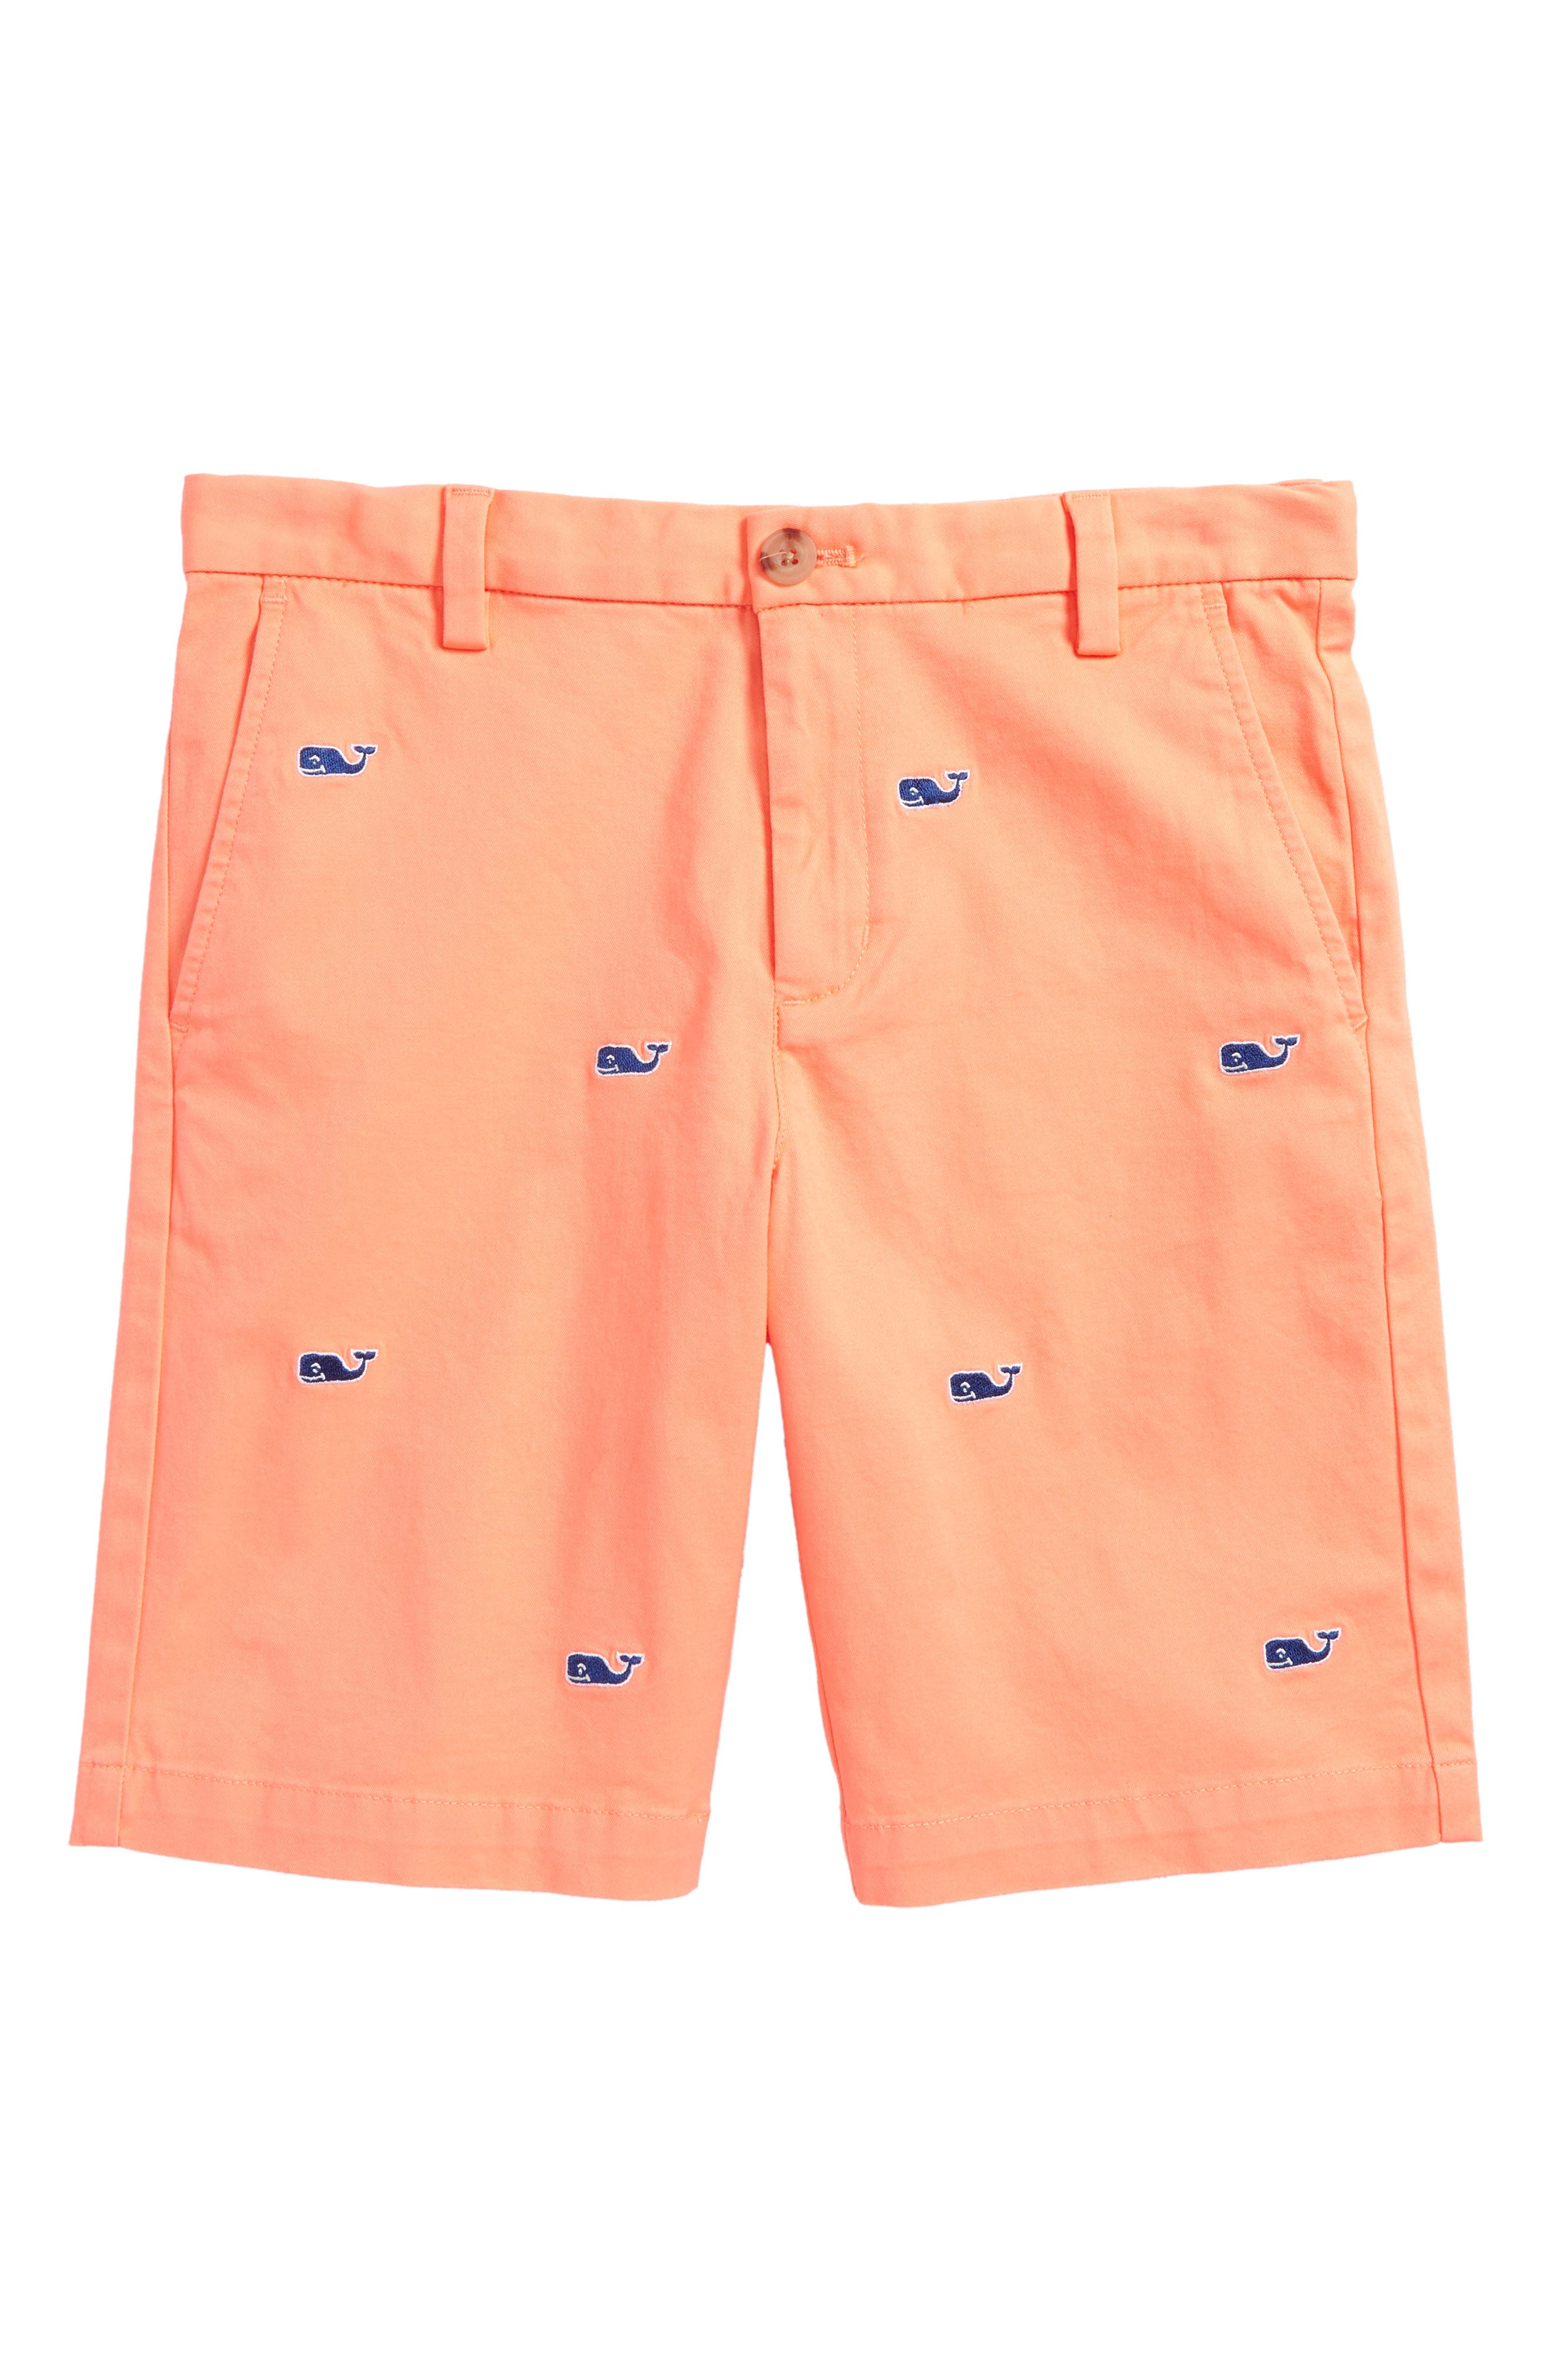 Stretch Breaker Whale Embroidered Shorts,                             Main thumbnail 1, color,                             885